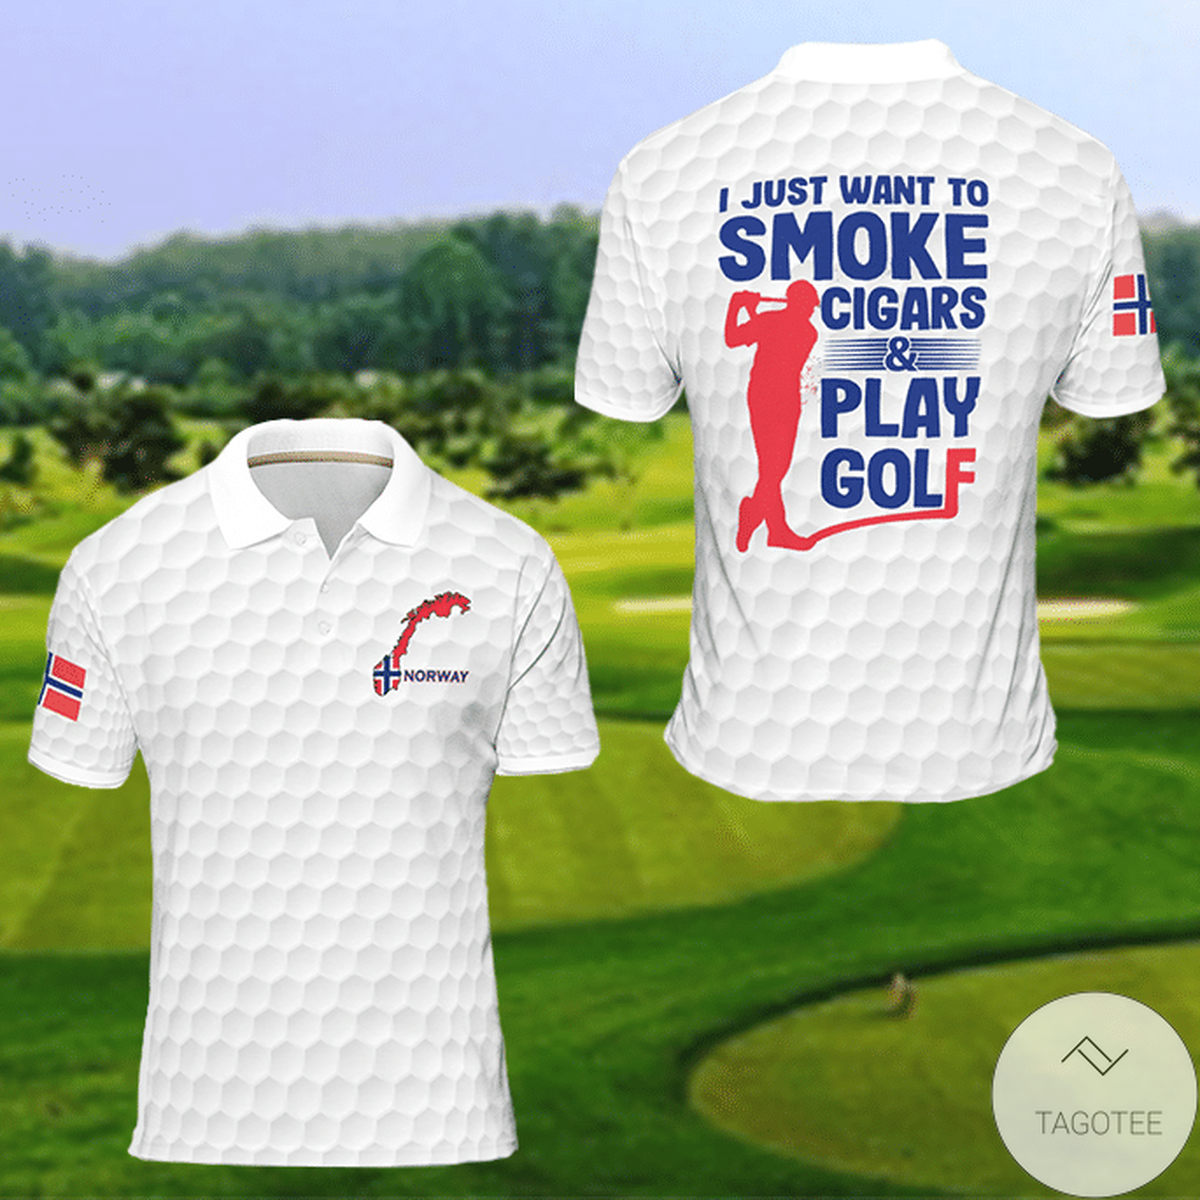 Norway I Just Want To Smoke Cigars And Play Golf Polo Shirt Polo Shirt